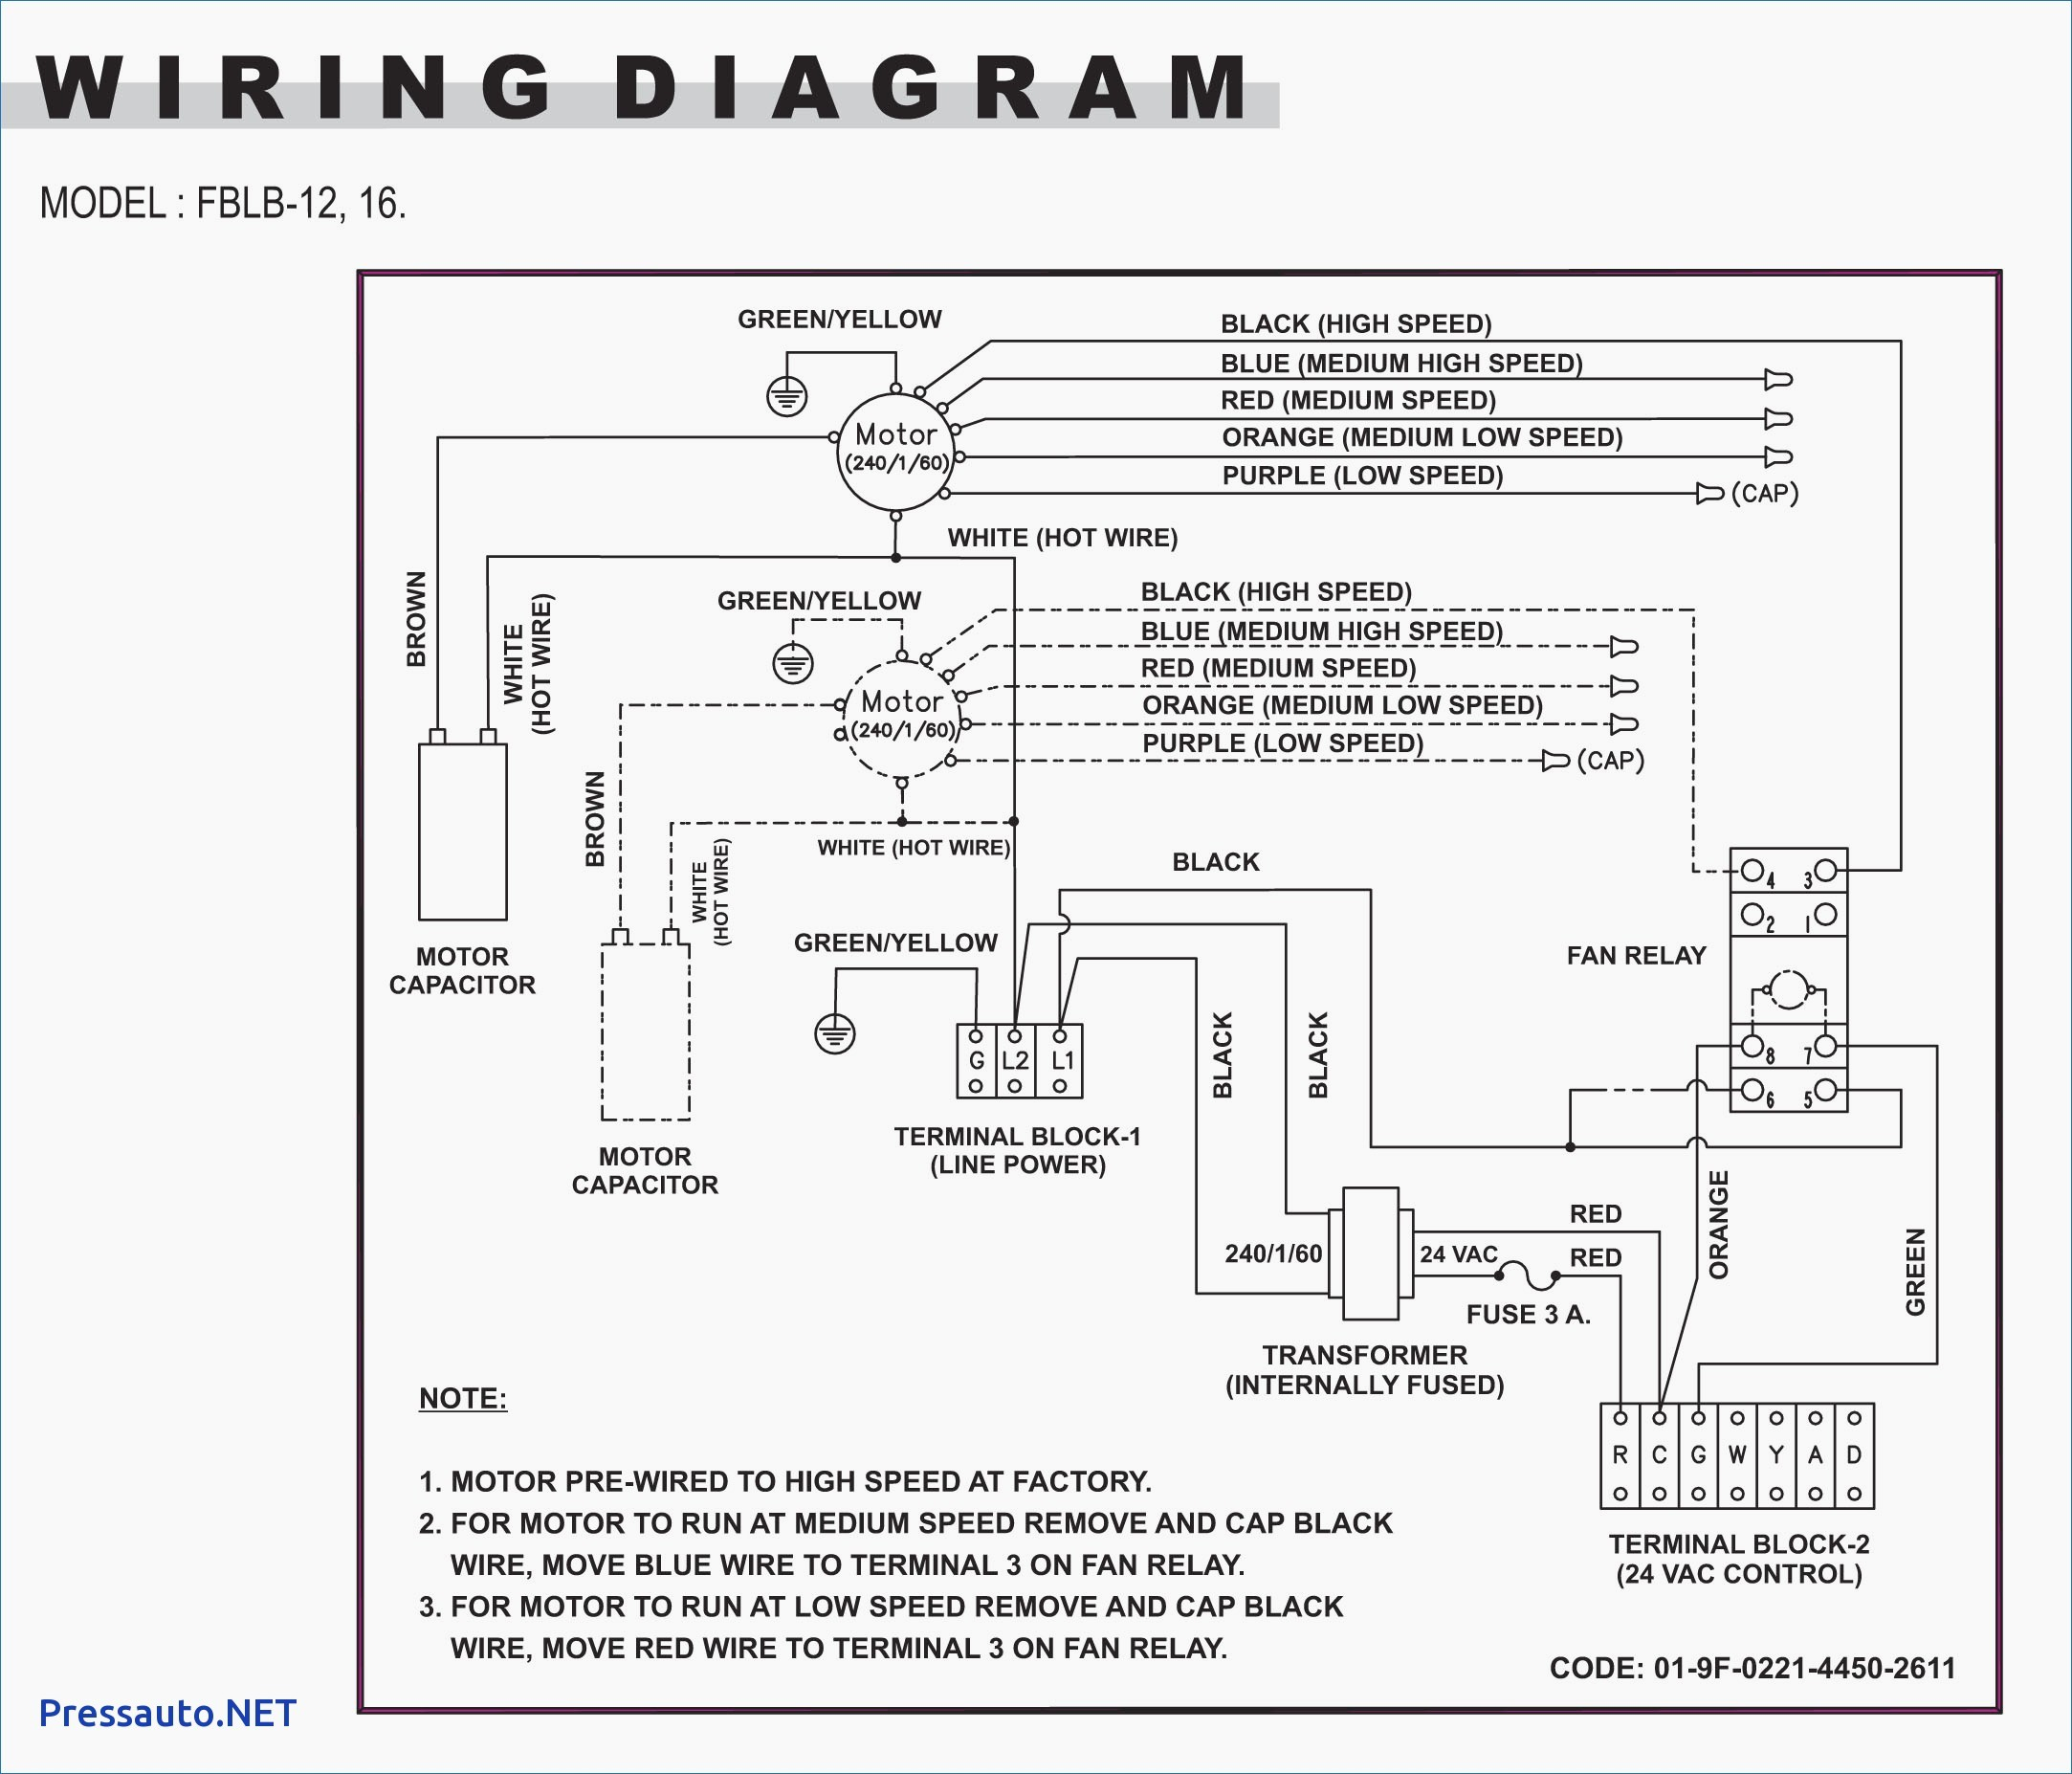 patton floor heater wiring schematic wiring diagram schematic patton electric heater wiring diagram patton heater wiring diagram #1